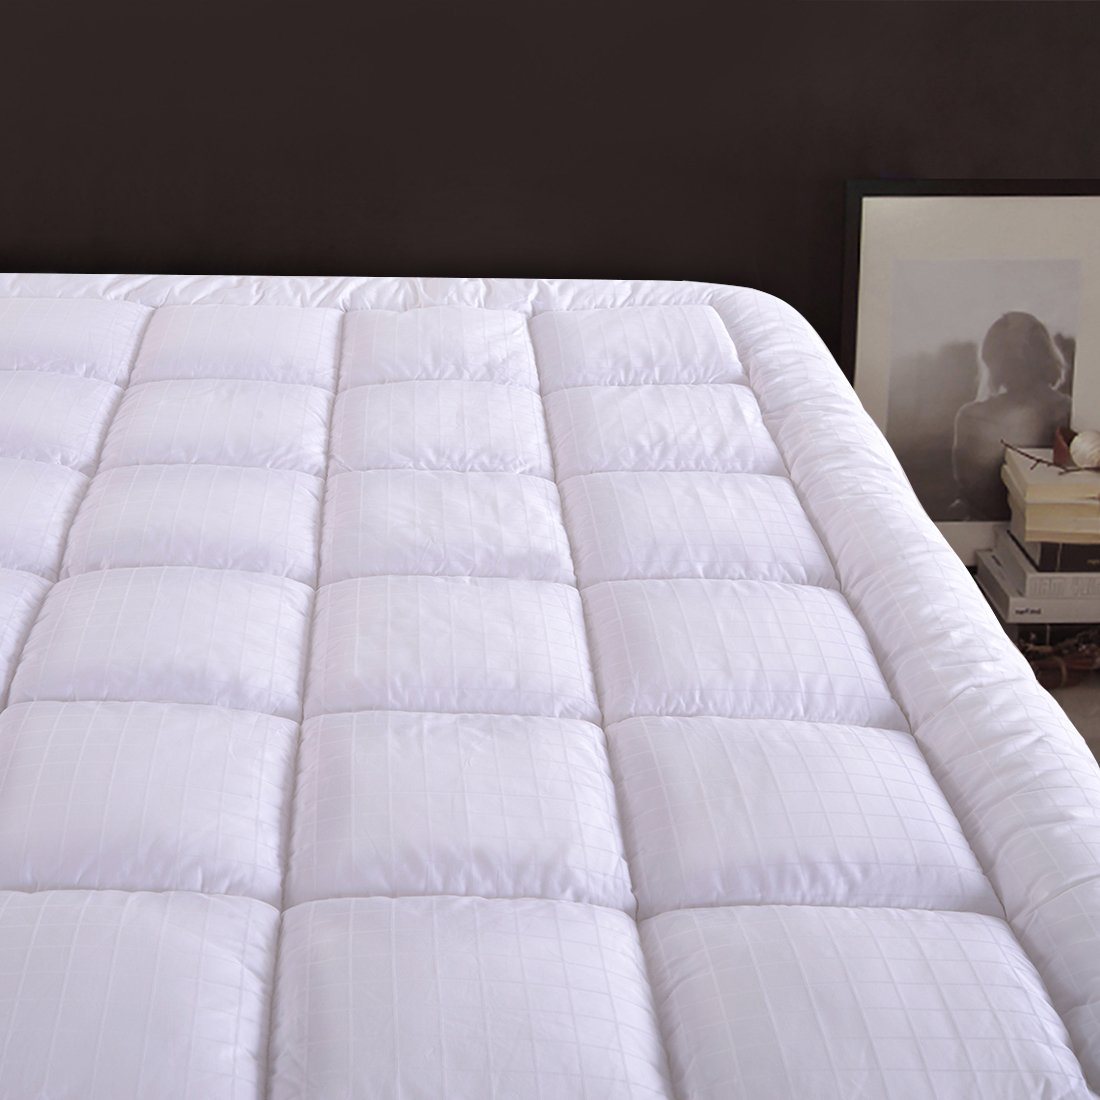 "Cloudream Twin Overfilled Mattress Pad Cover 8-22""Deep Pocket-300TC Snow Down Alternative Pillow Top Mattress Topper"